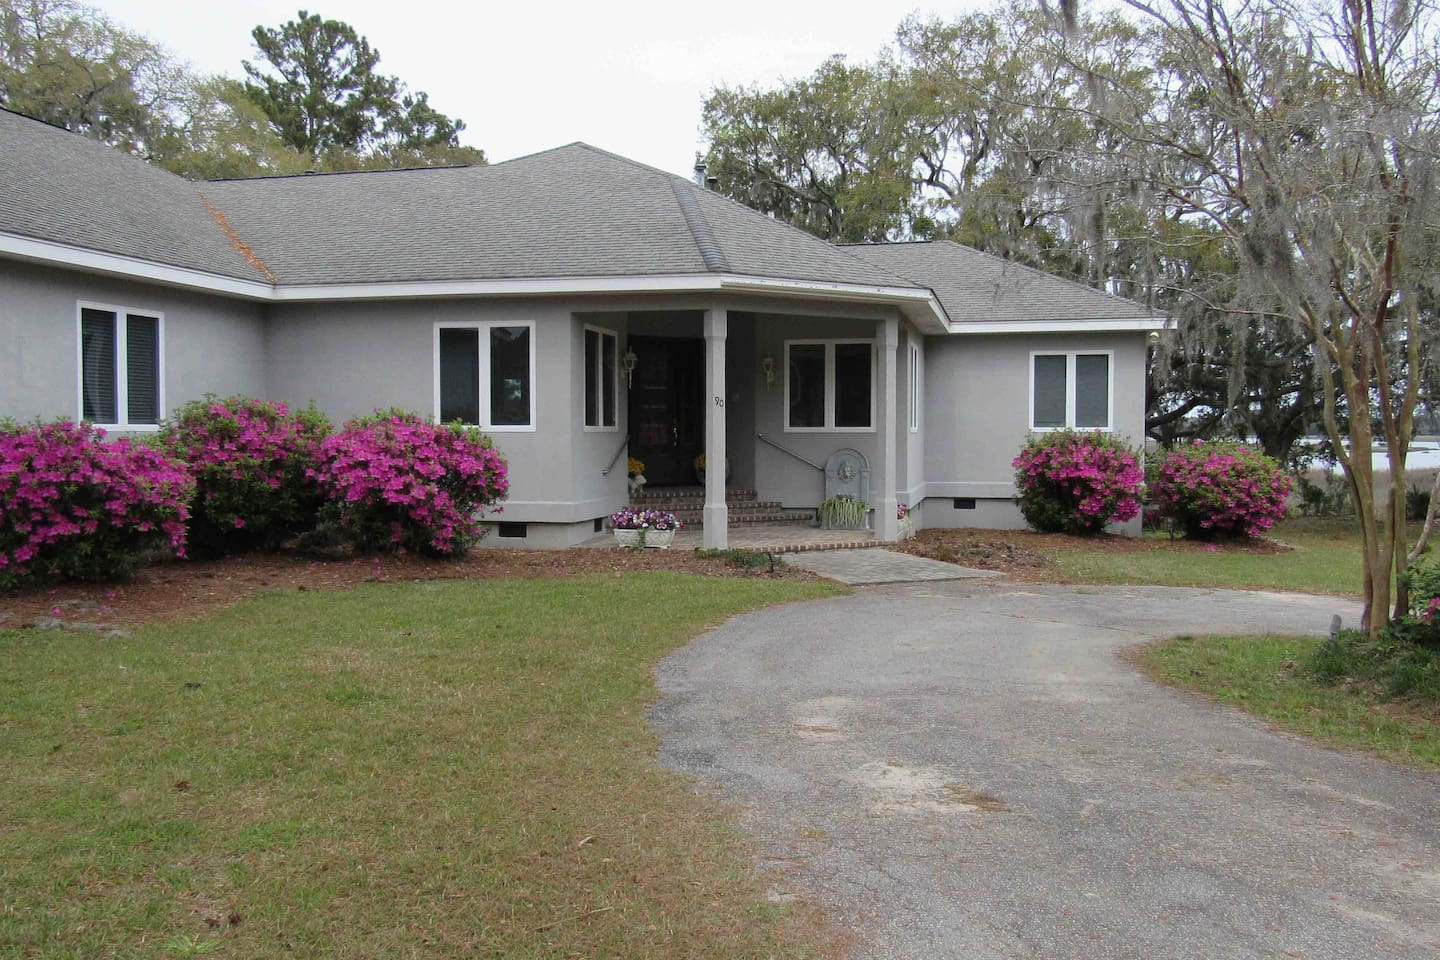 Front entrance to Low Country River Hideaway.  There is a small step up and then 3 small steps that have a hand rail to guide you to the front door.  Once inside the only other stairs are steps leading upstairs to the bonus room.